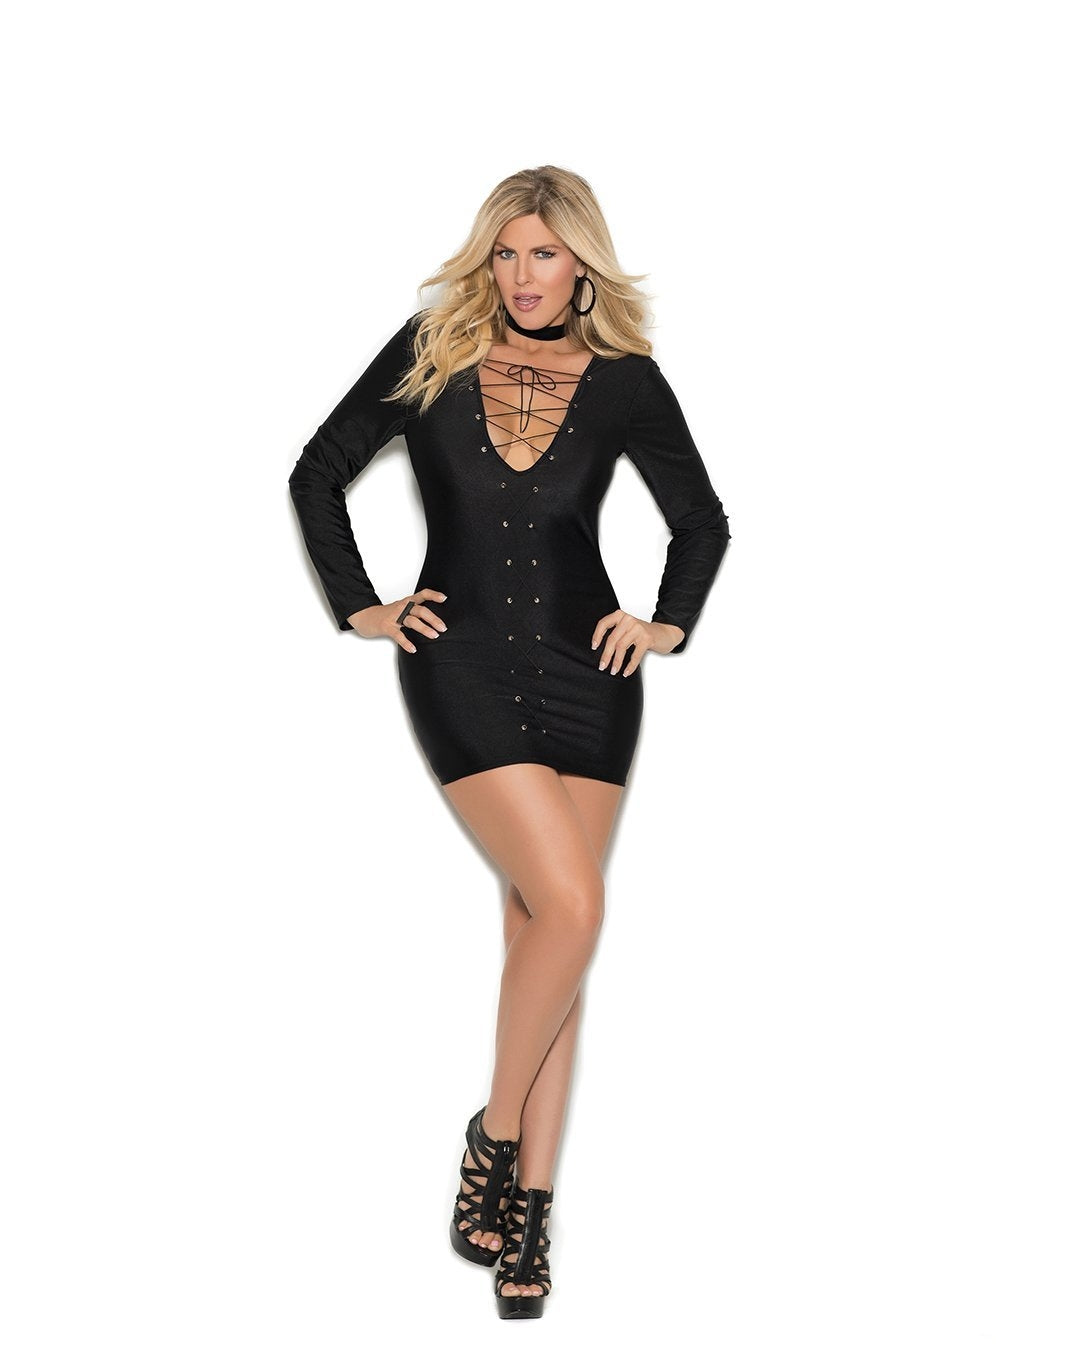 Long Sleeve Mini Dress with Lace Up Front-club wear-Elegant Moments-1x-black-Nakees